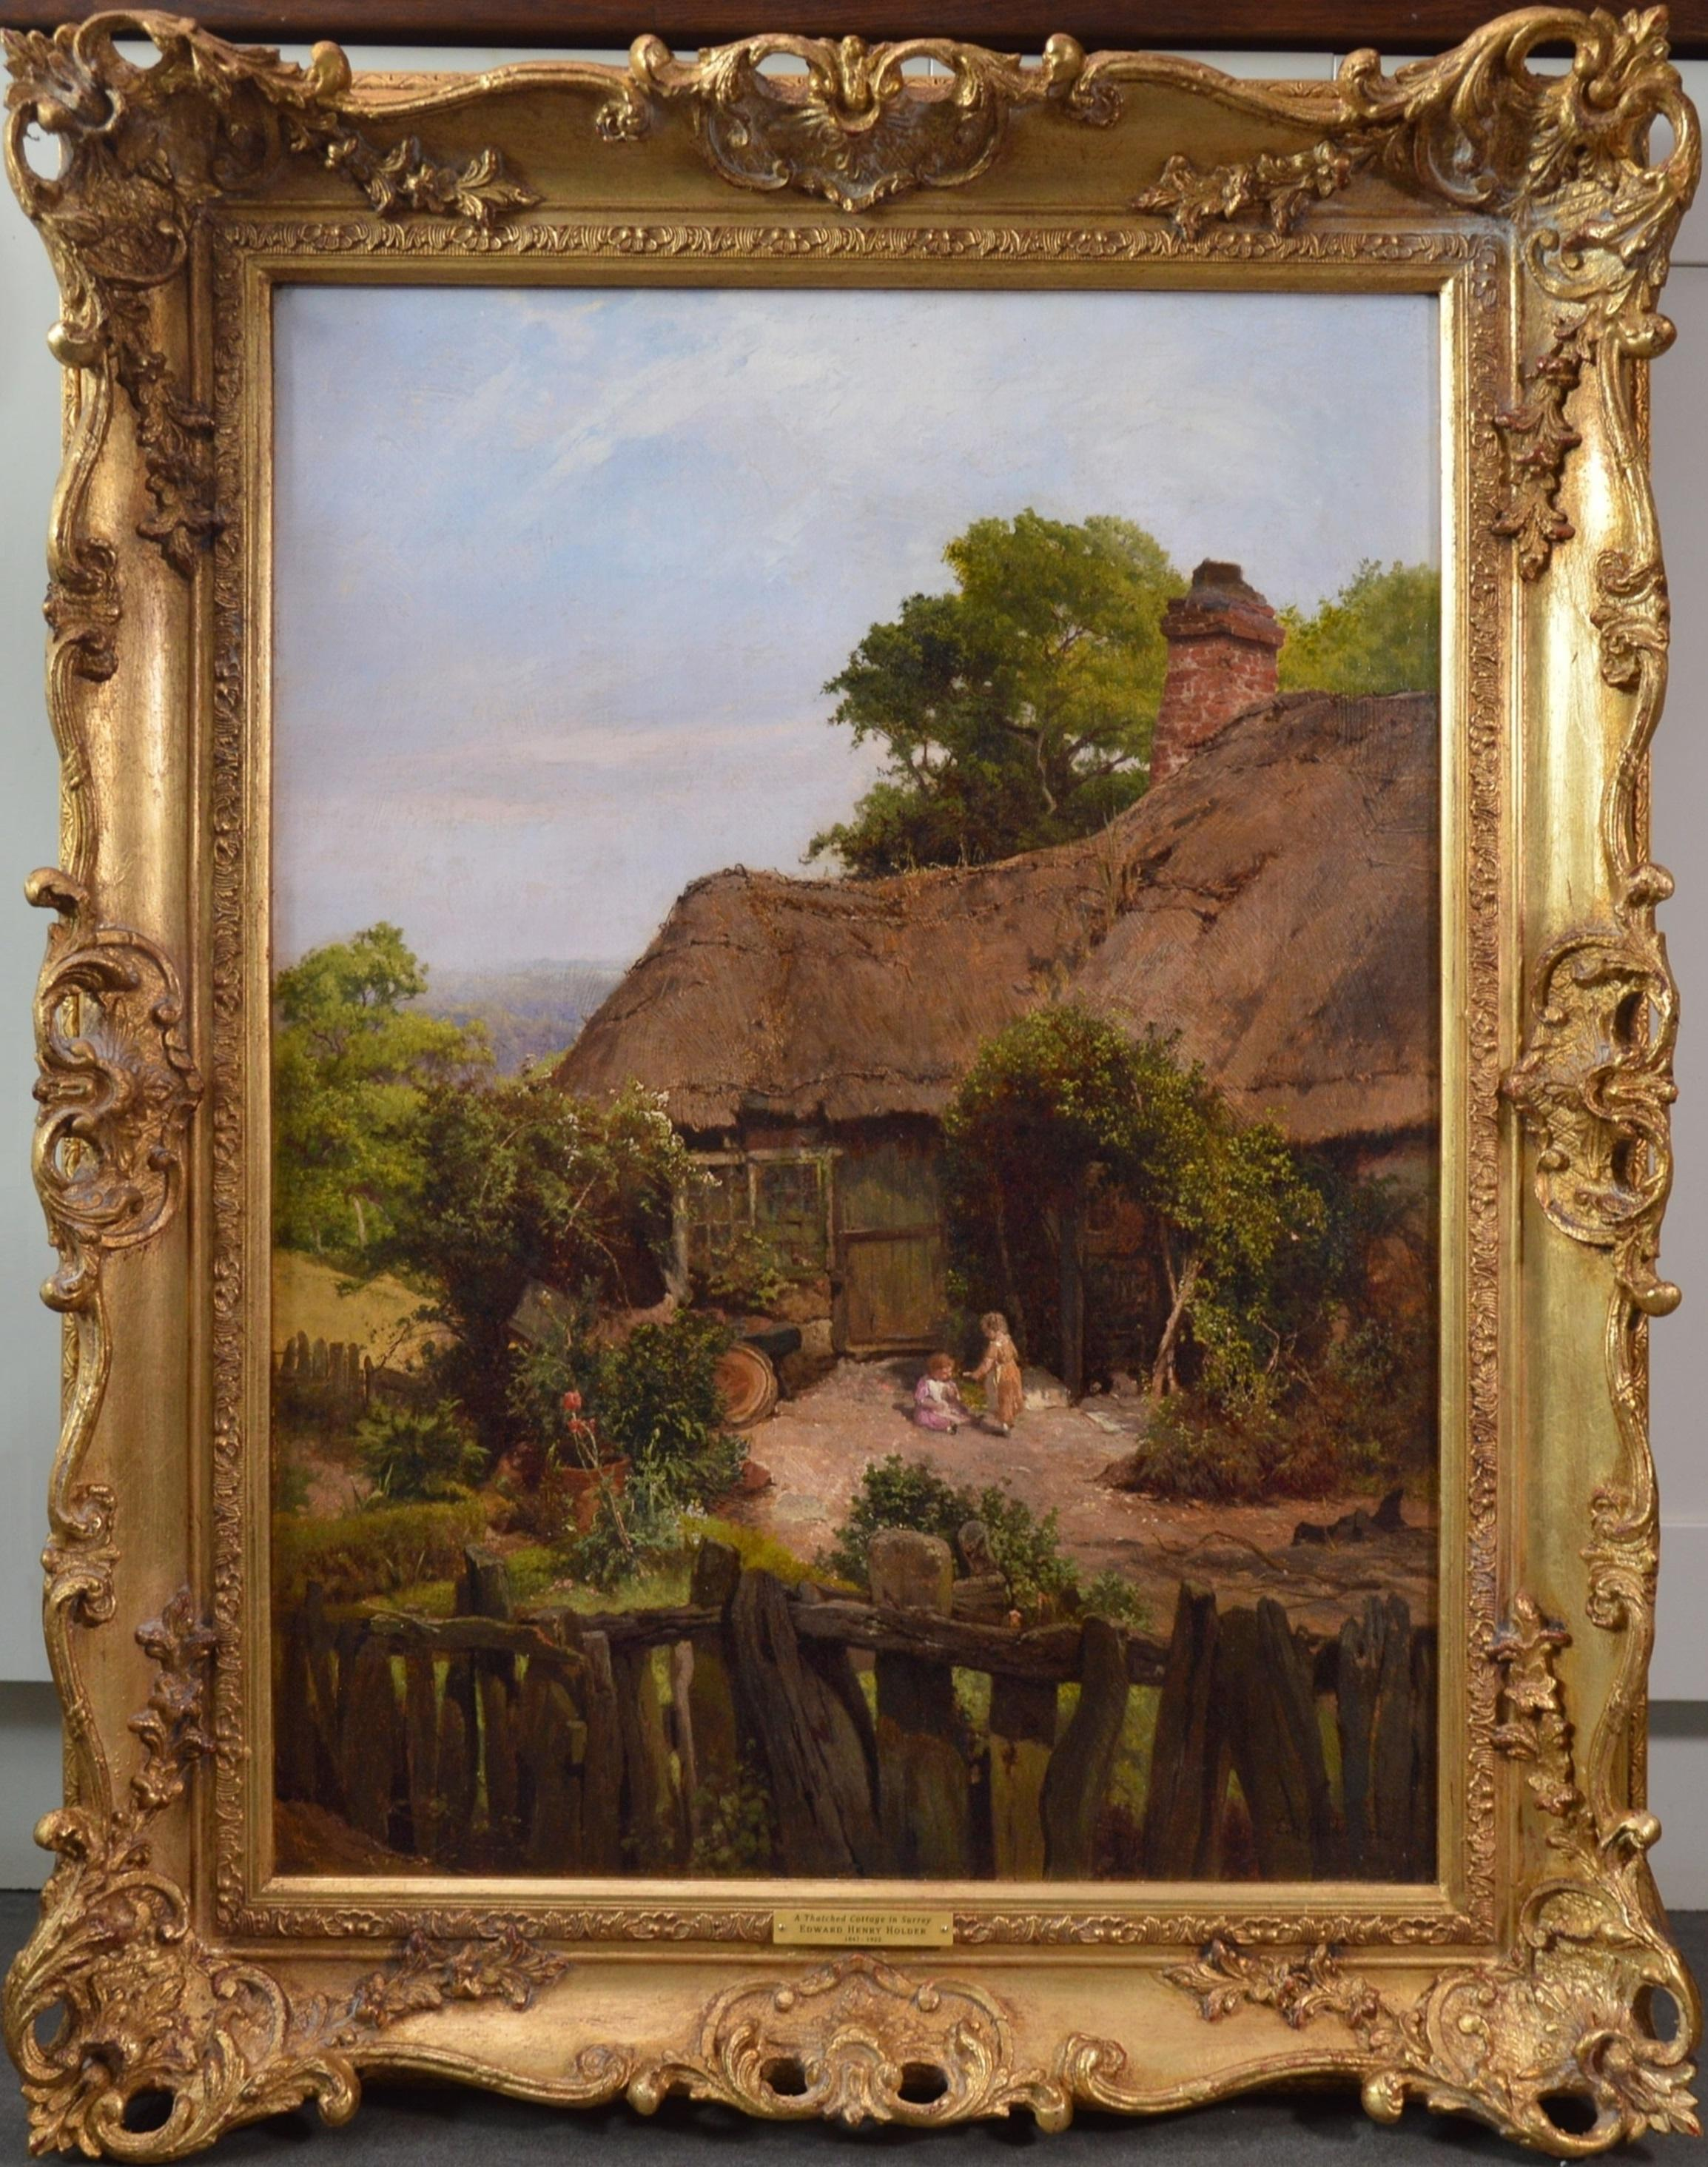 A Thatched Cottage in Surrey - 19th Century Landscape Oil Painting